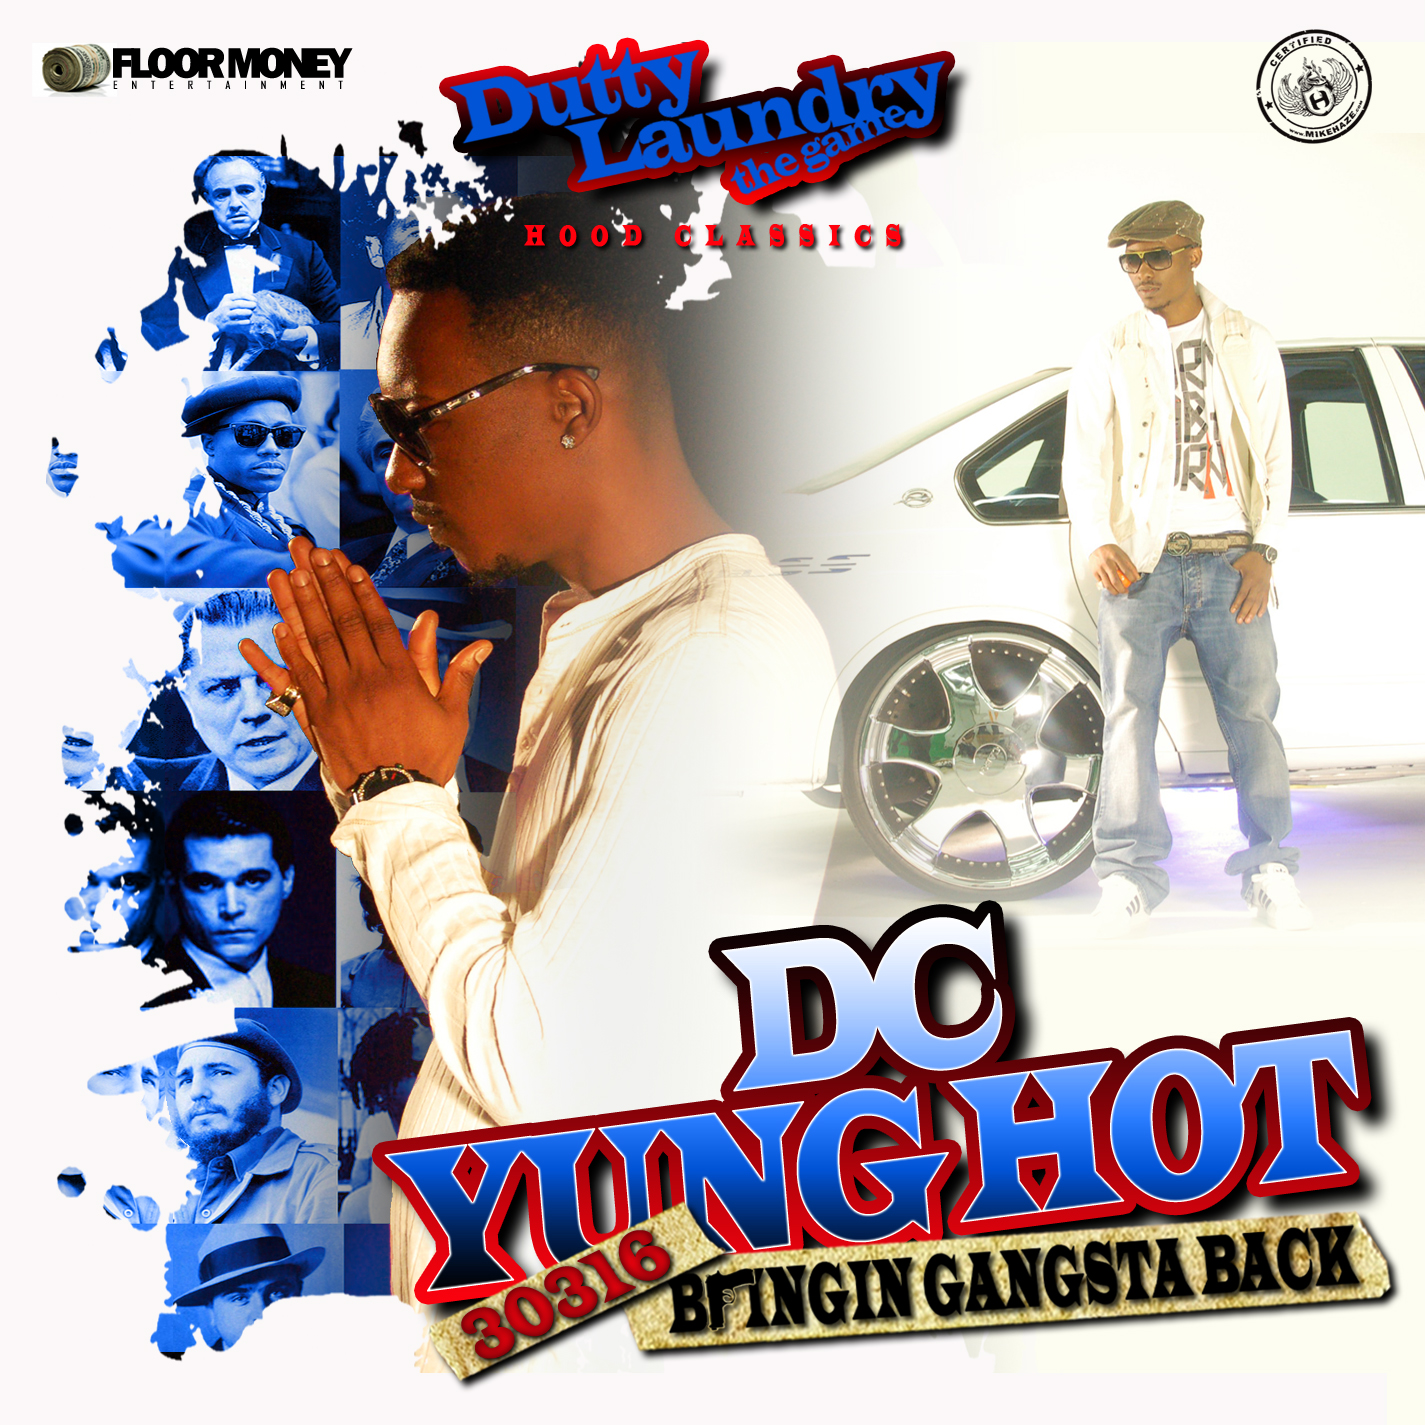 Dutty Laundry & DC Yung Hot – 30316: Bringin' Gangsta Back (Mixtape)